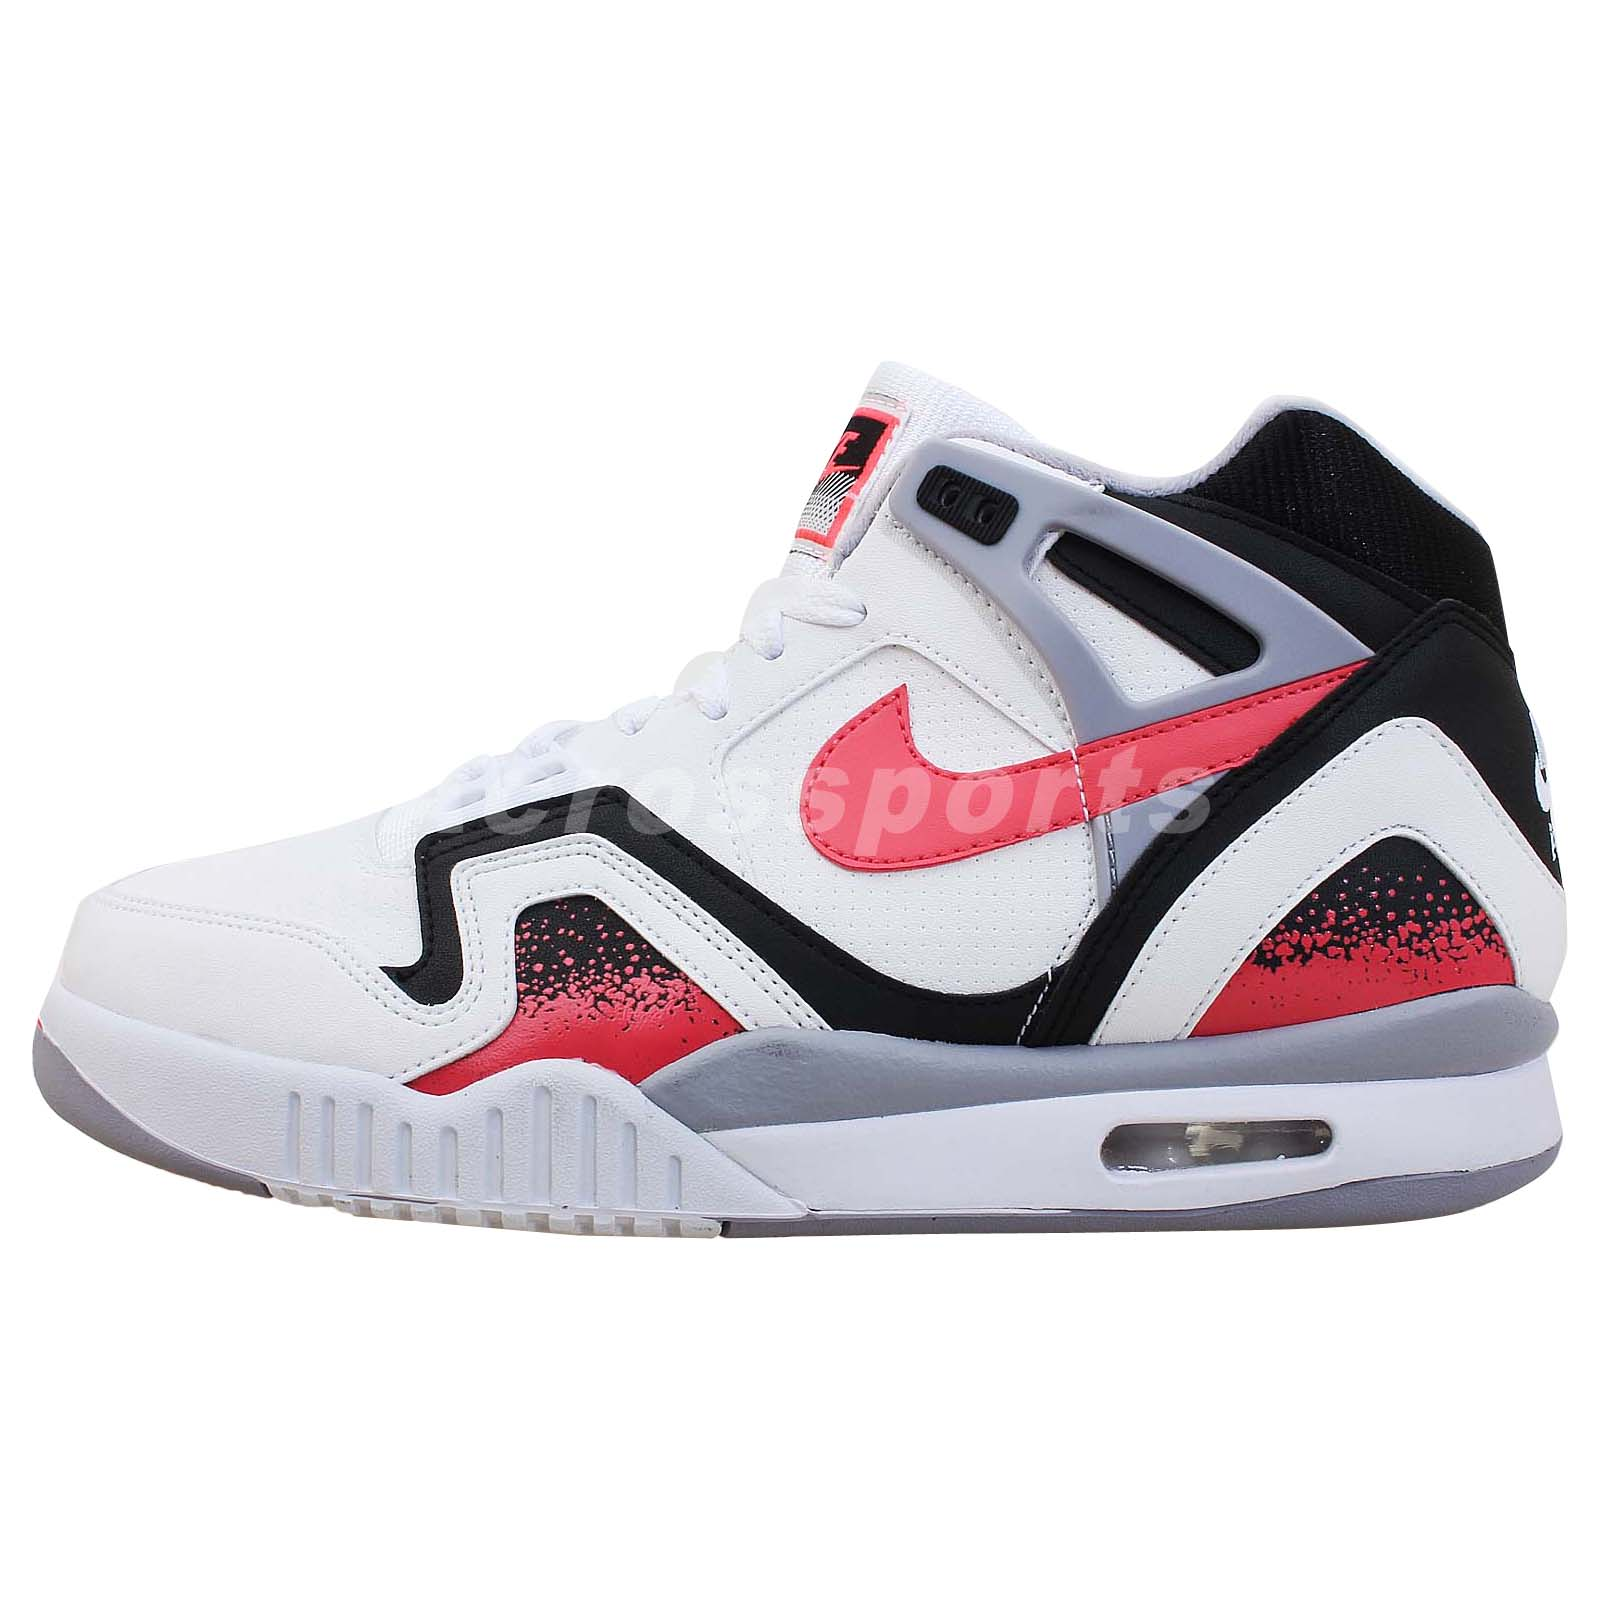 Andre Agassi Shoes For Sale